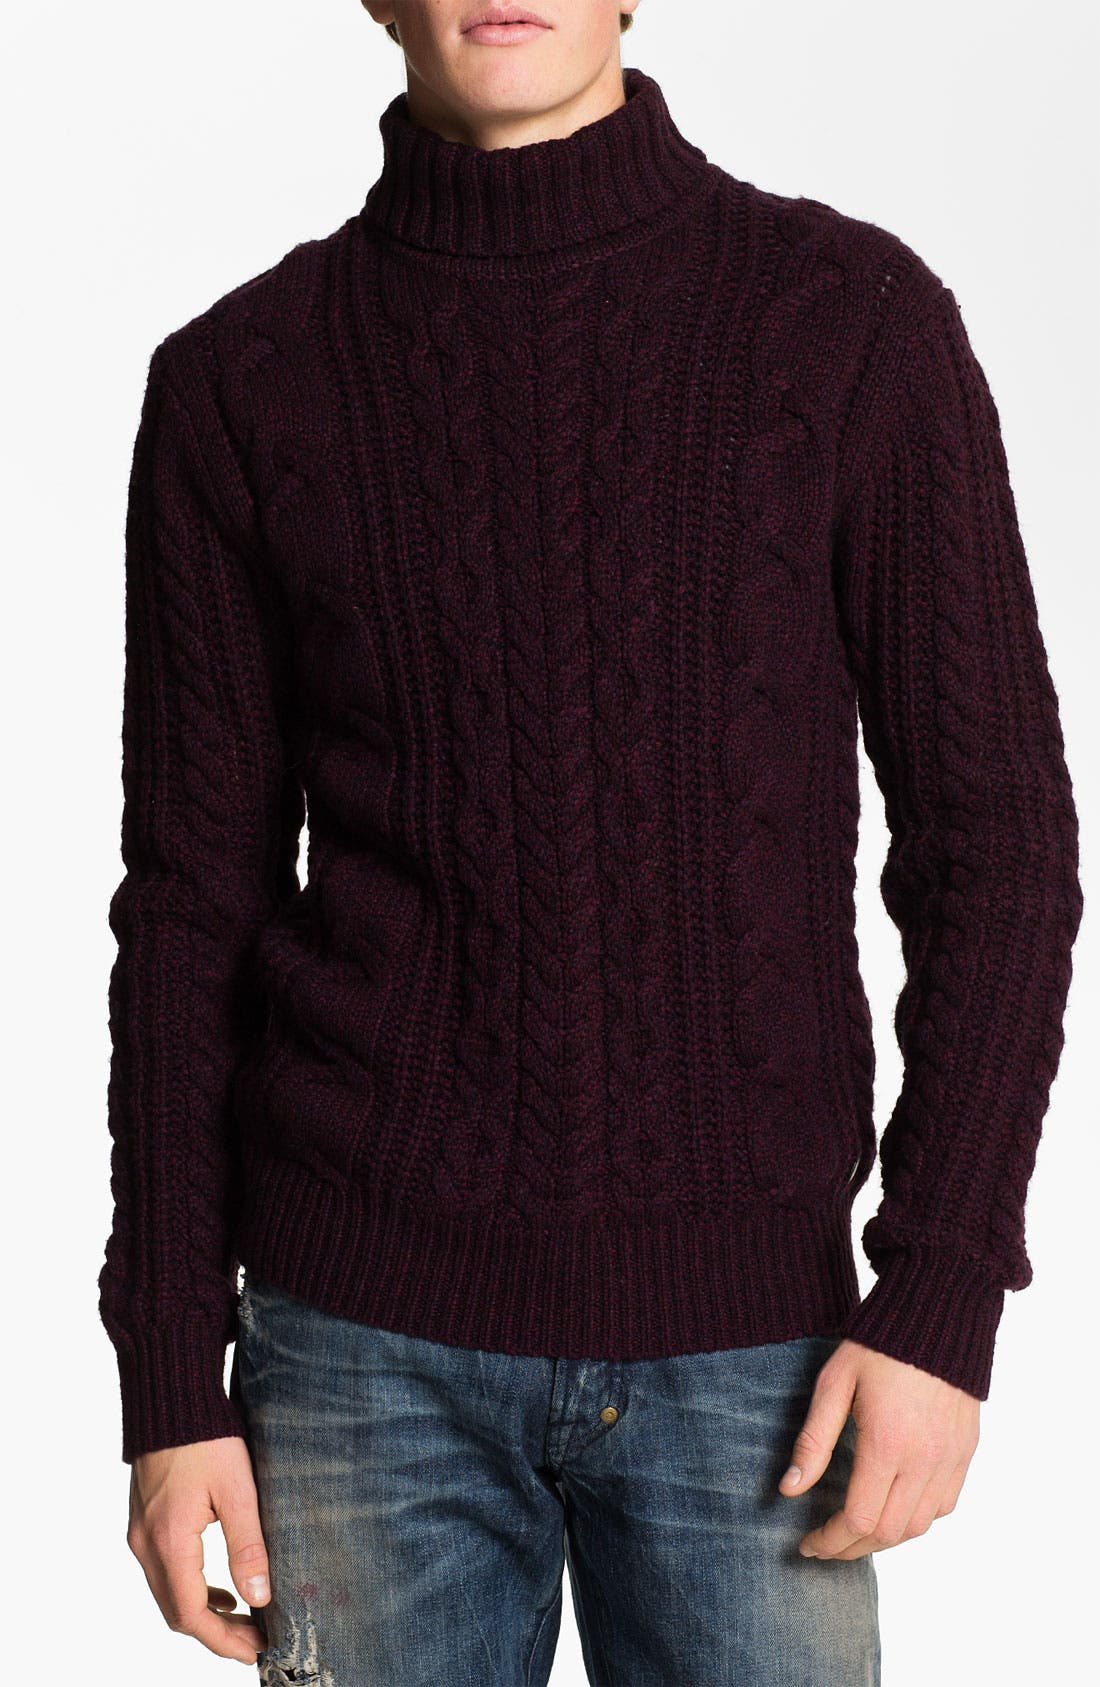 Alternate Image 1 Selected - PLECTRUM by Ben Sherman Cable Knit Turtleneck Sweater